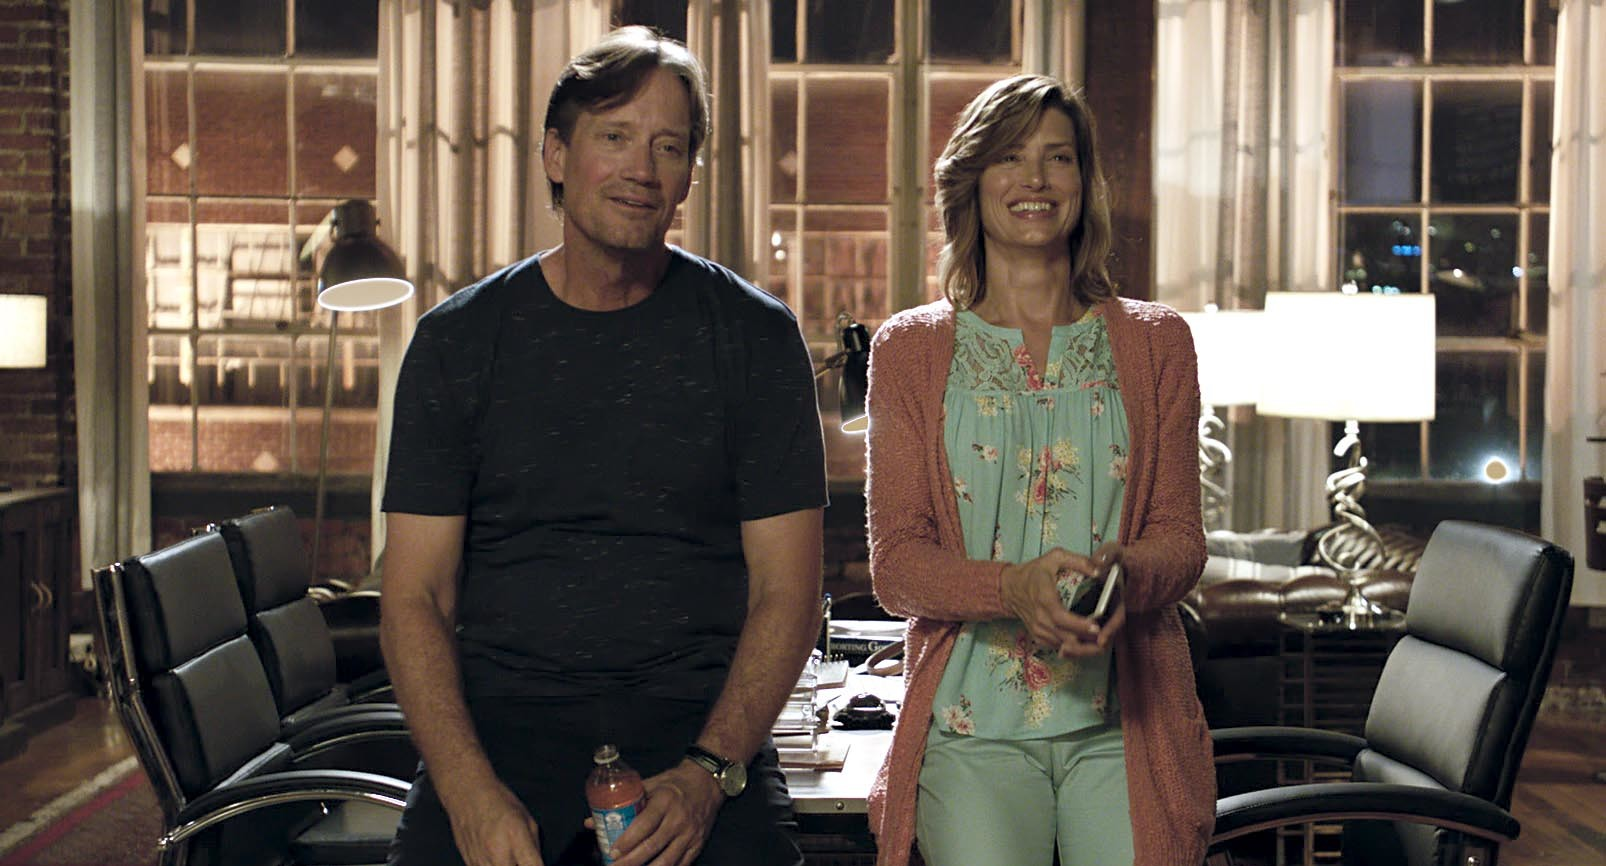 Let There Be Light - Kevin and Sam Sorbo laughing